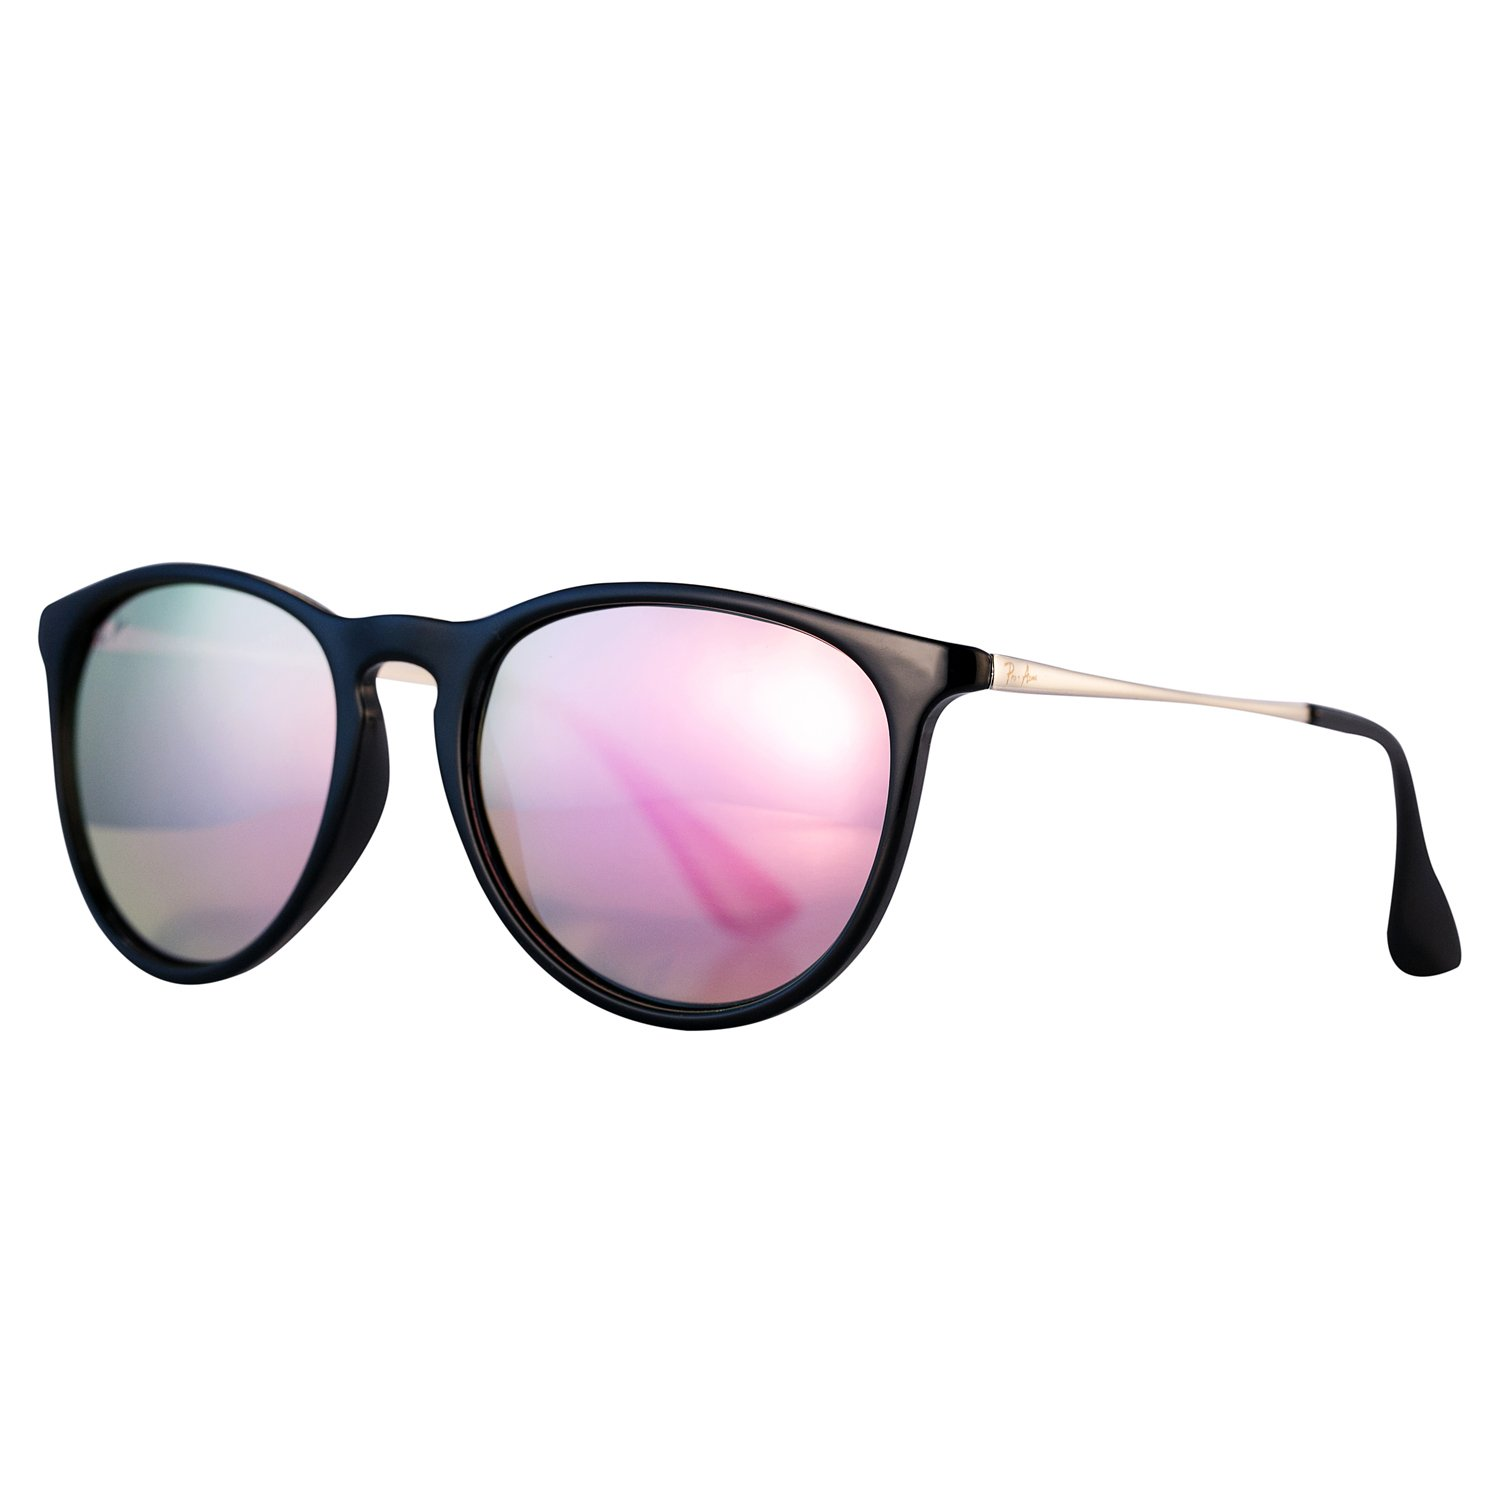 Pro Acme Classic Round Polarized Sunglasses for Women Vintage Brand Designer Style (Black Frame/Pink Mirrored Lens) by Pro Acme